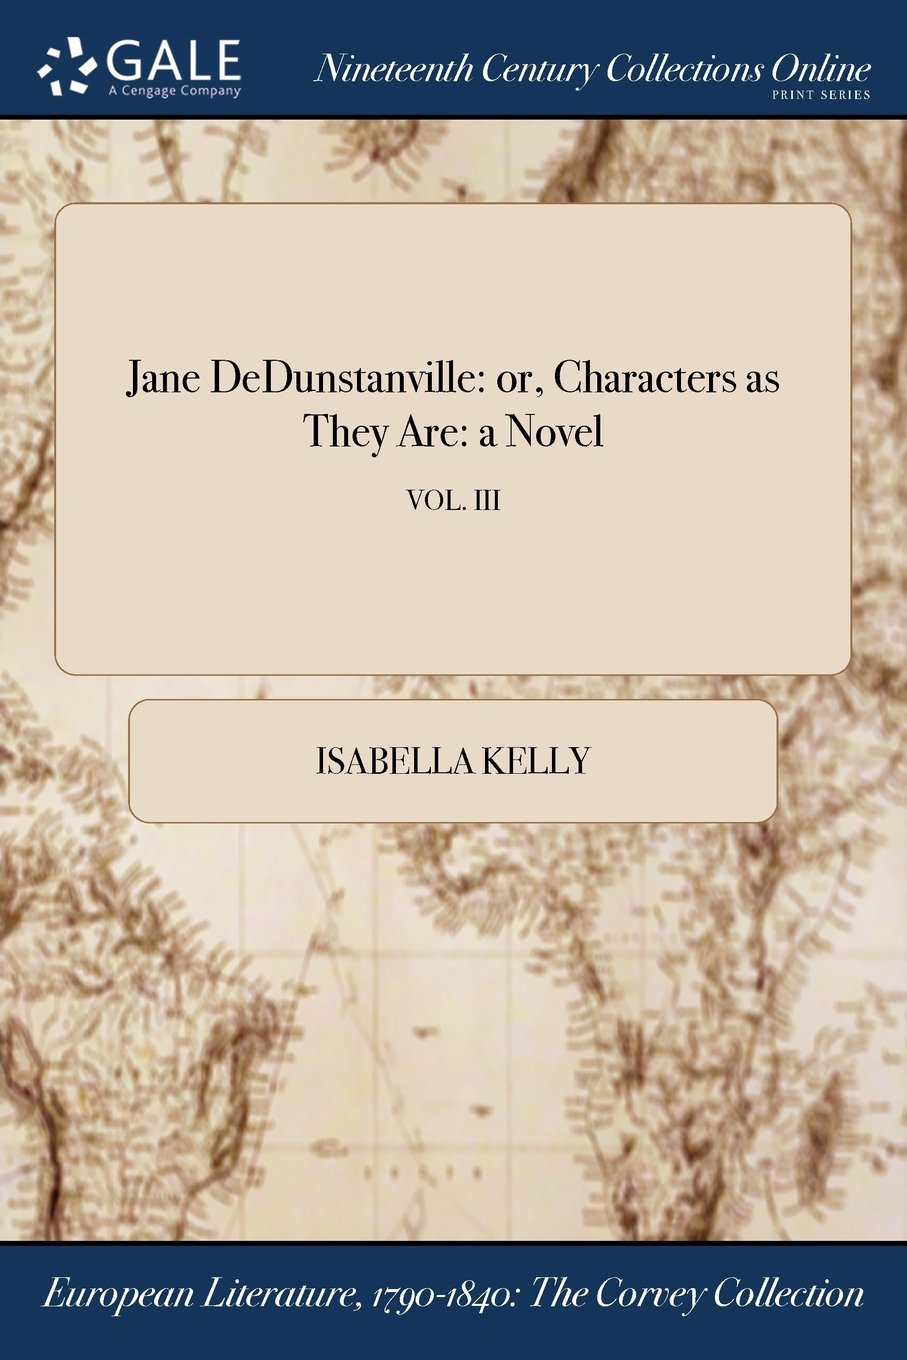 Jane DeDunstanville: or, Characters as They Are: a Novel; VOL. III pdf